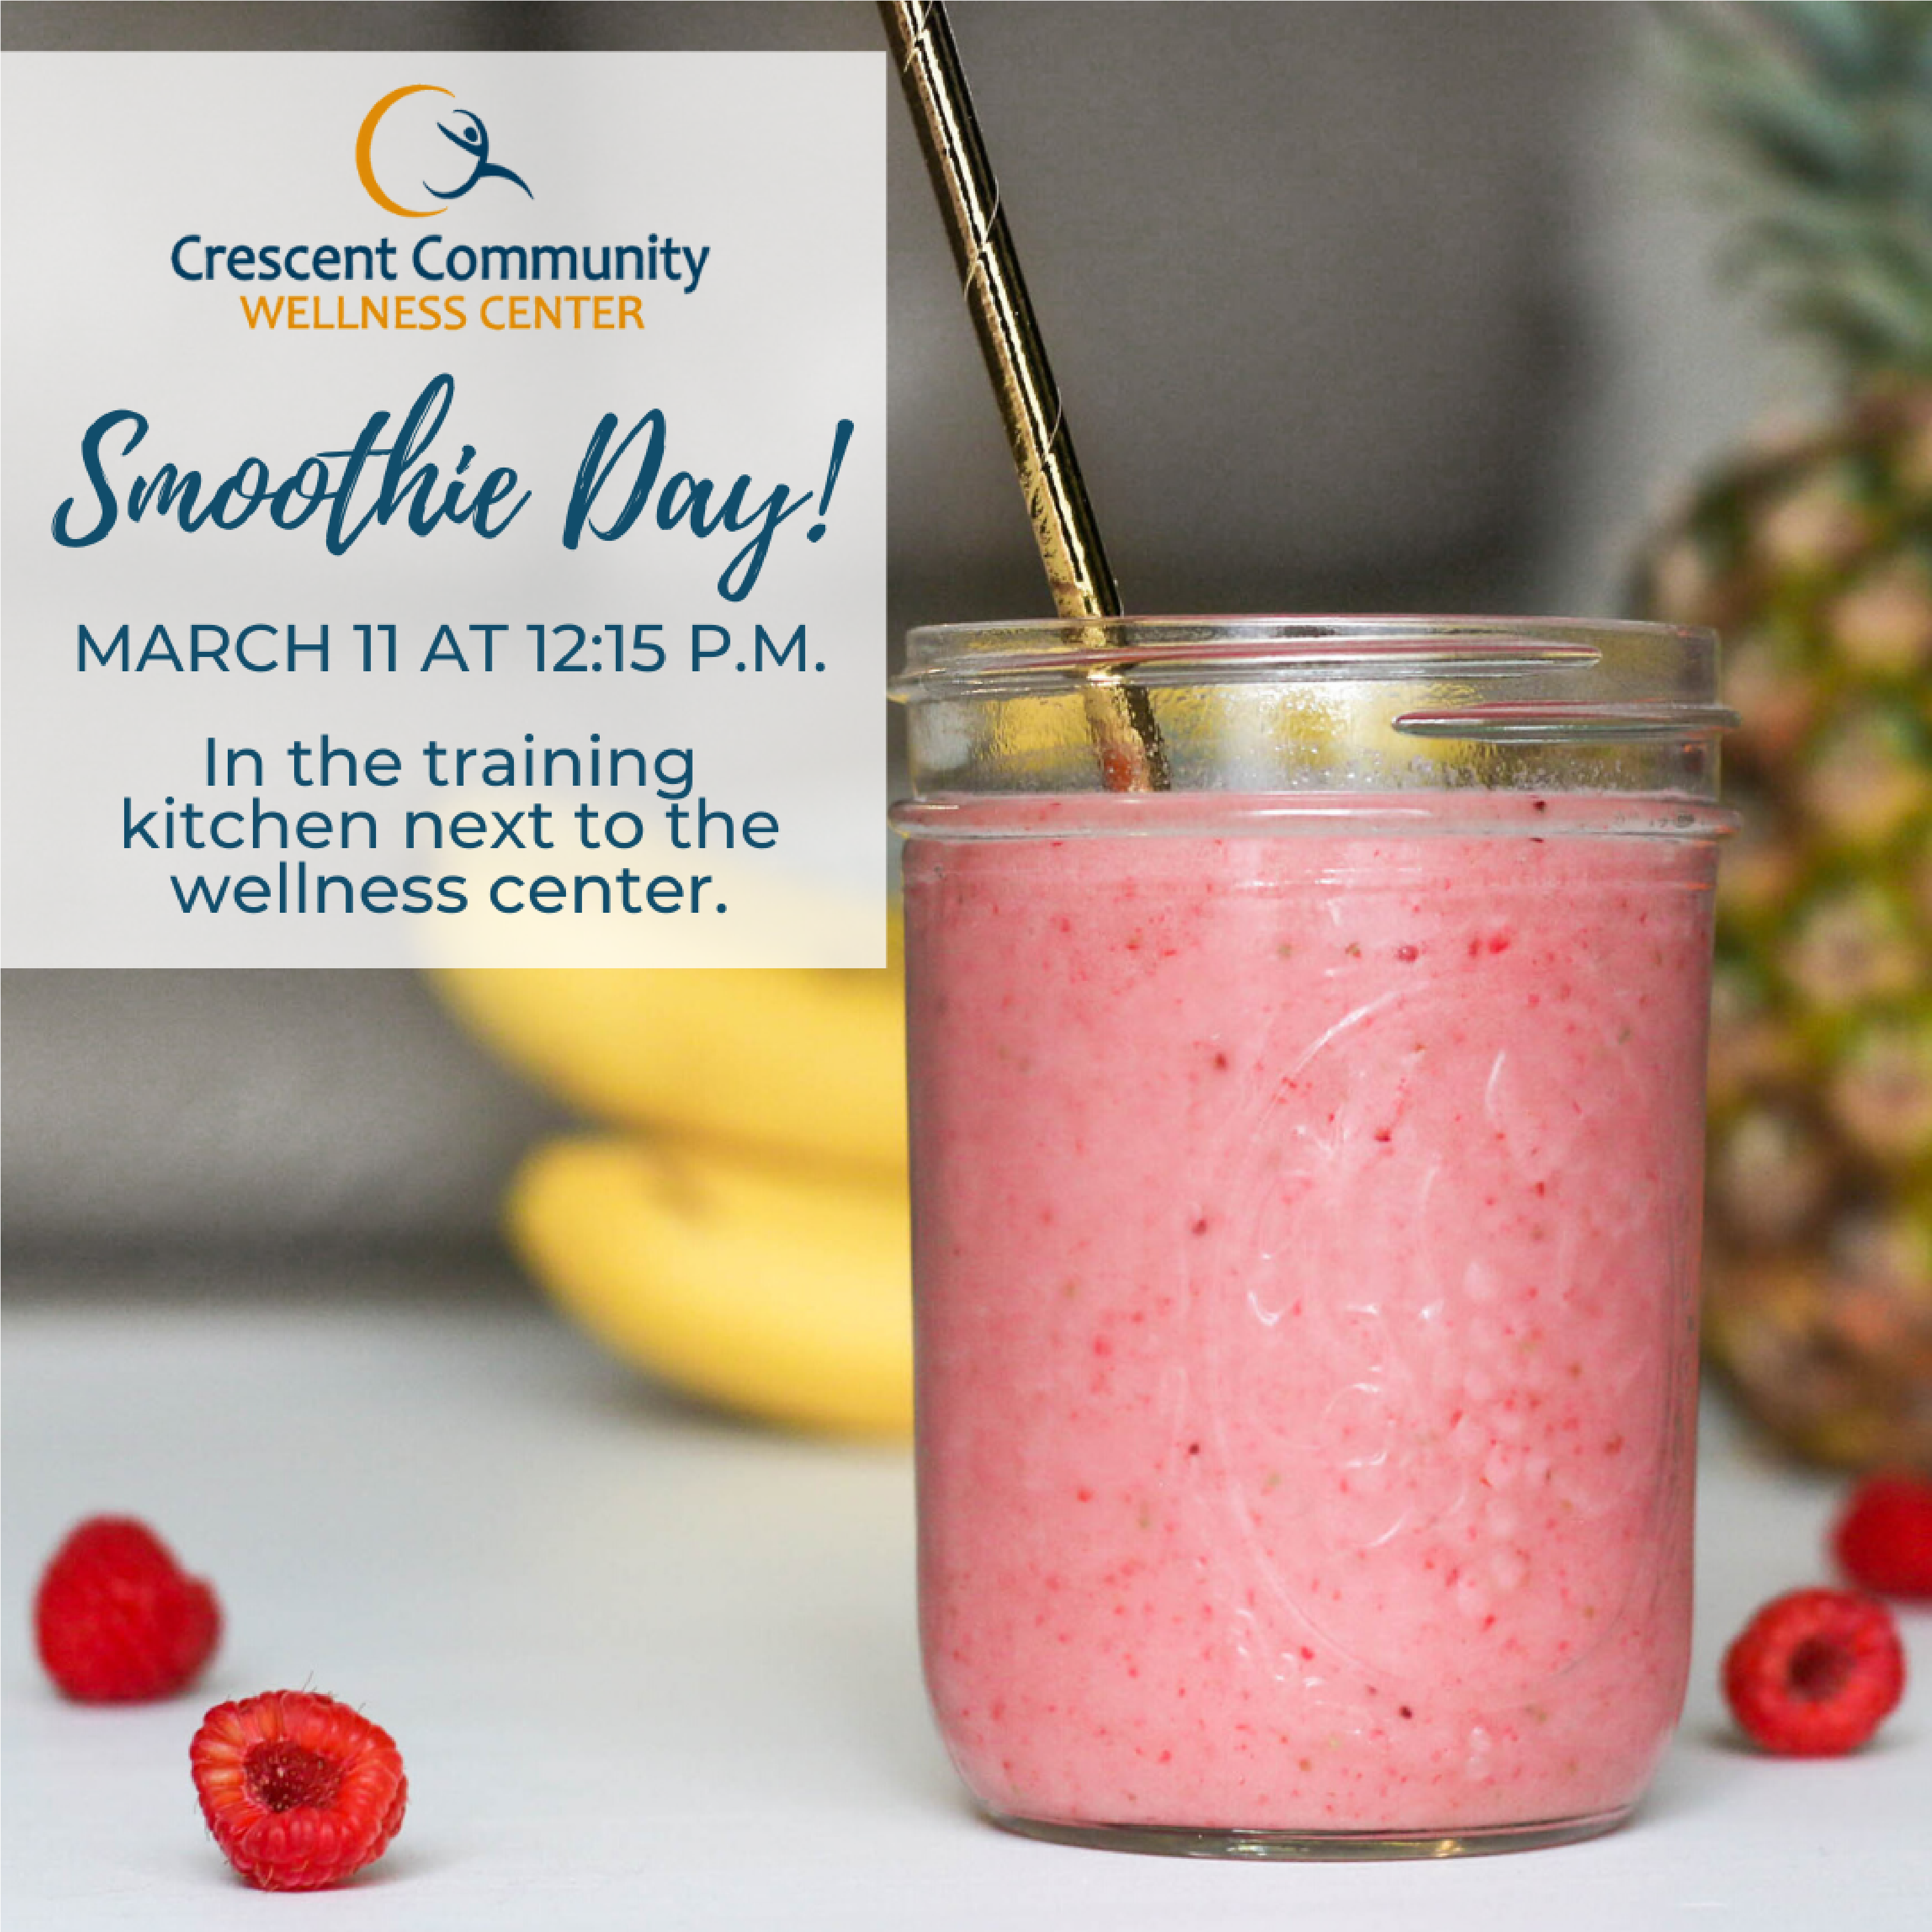 Join us for Smoothie Day!